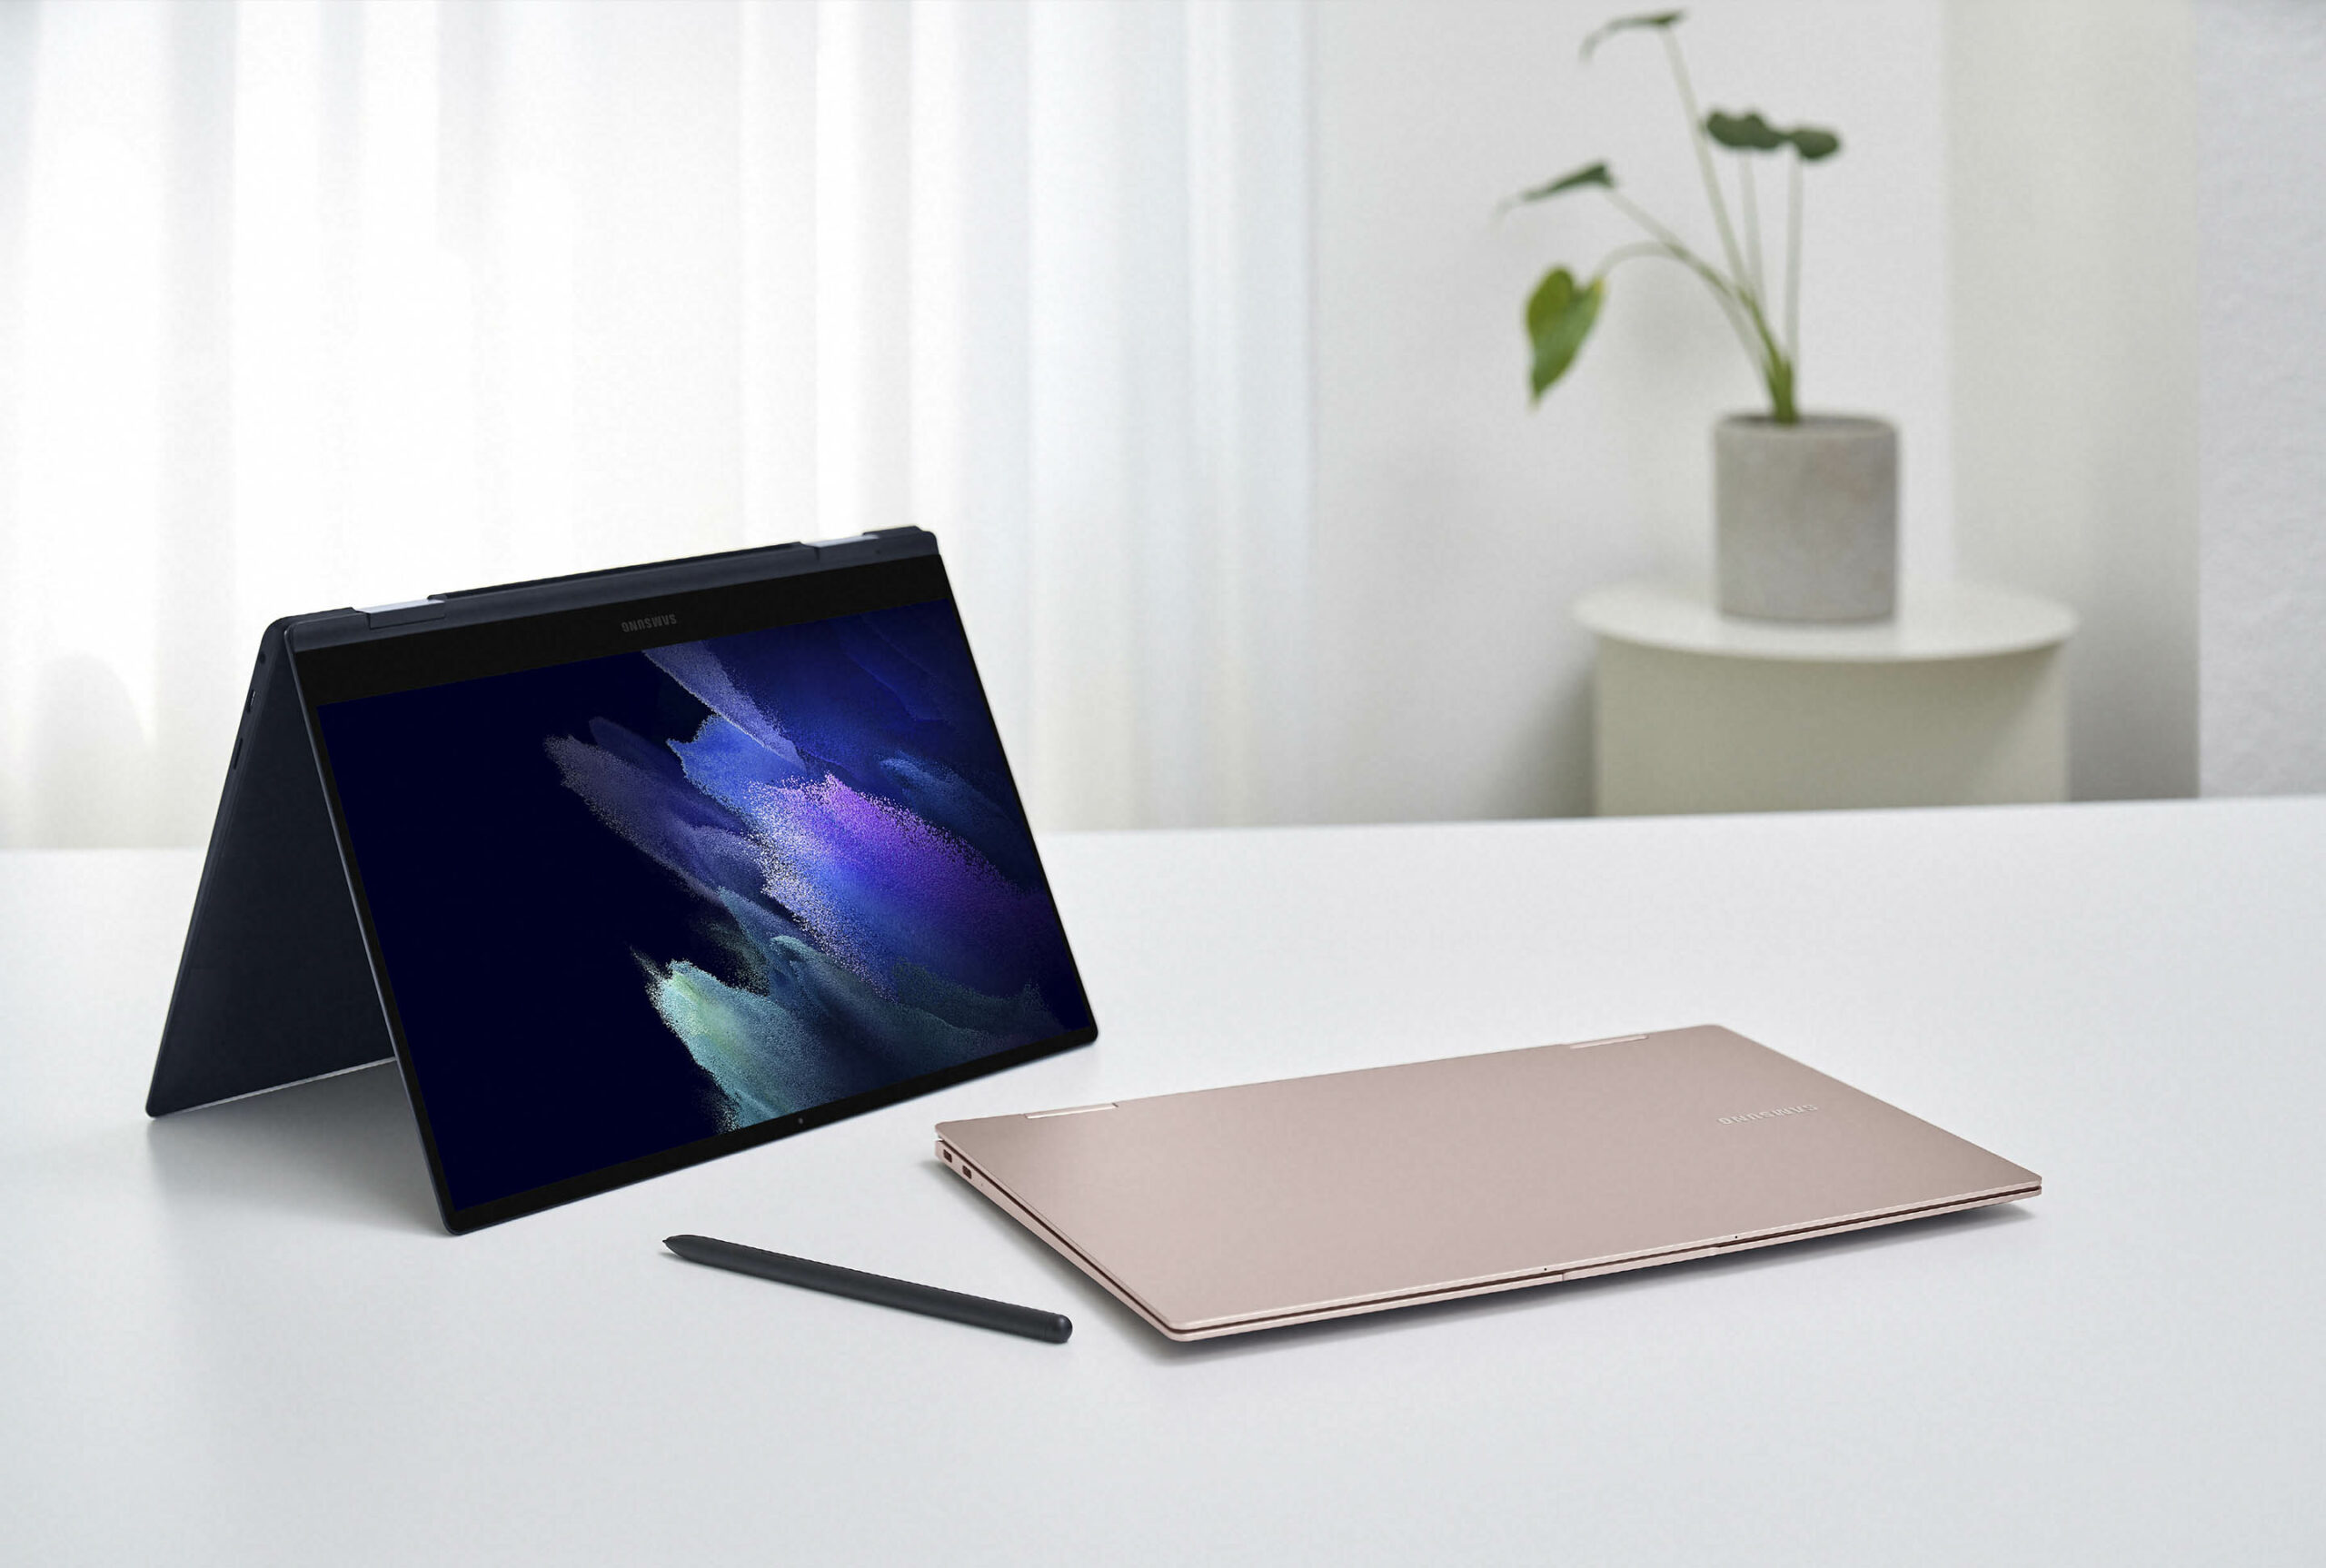 Samsung announces new Galaxy Book line with 11th Gen Intel processors